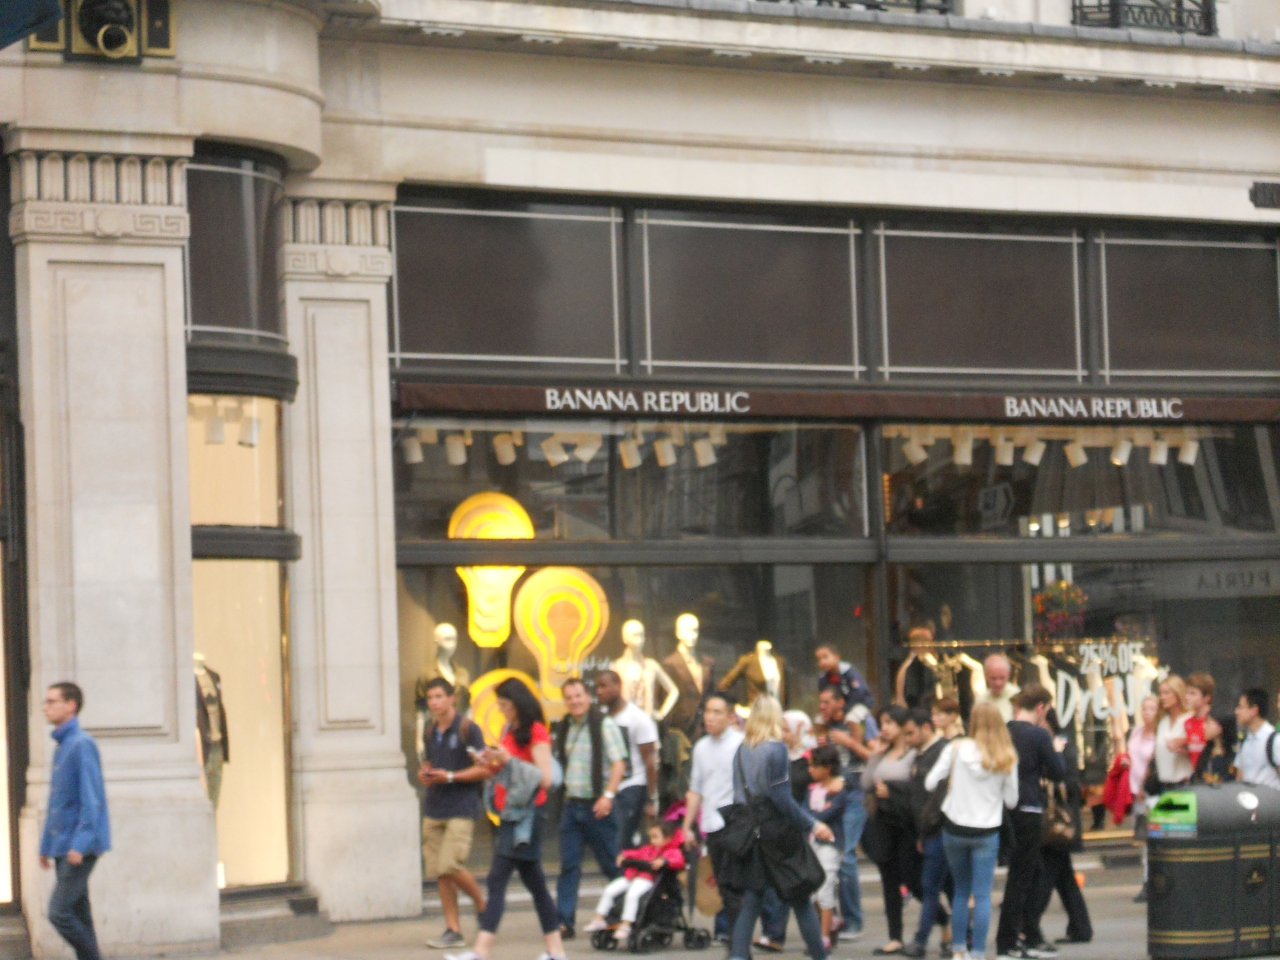 READ MORE: Banana Republic to join M&S in Paris Its UK website will continue to operate, but its bricks and mortar stores in Regent St, Kings Rd, Kensington, Canary Wharf, Covent Garden, One New Change, Westfield London and its Bath store on Union St will close down.